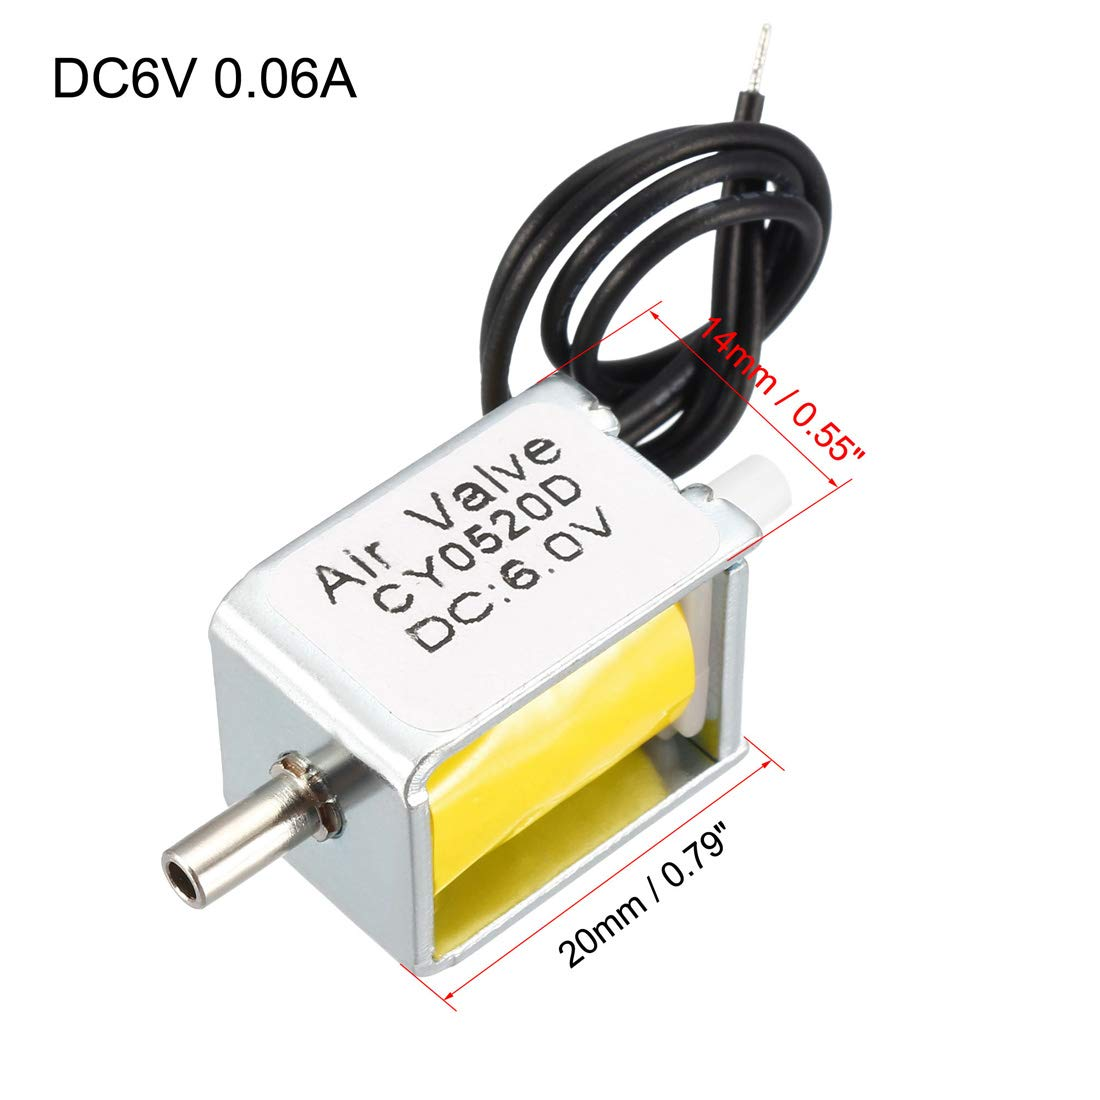 uxcell Miniature Solenoid Valve 2 Way Normally Opened DC6V 0.06A Air Solenoid Valve